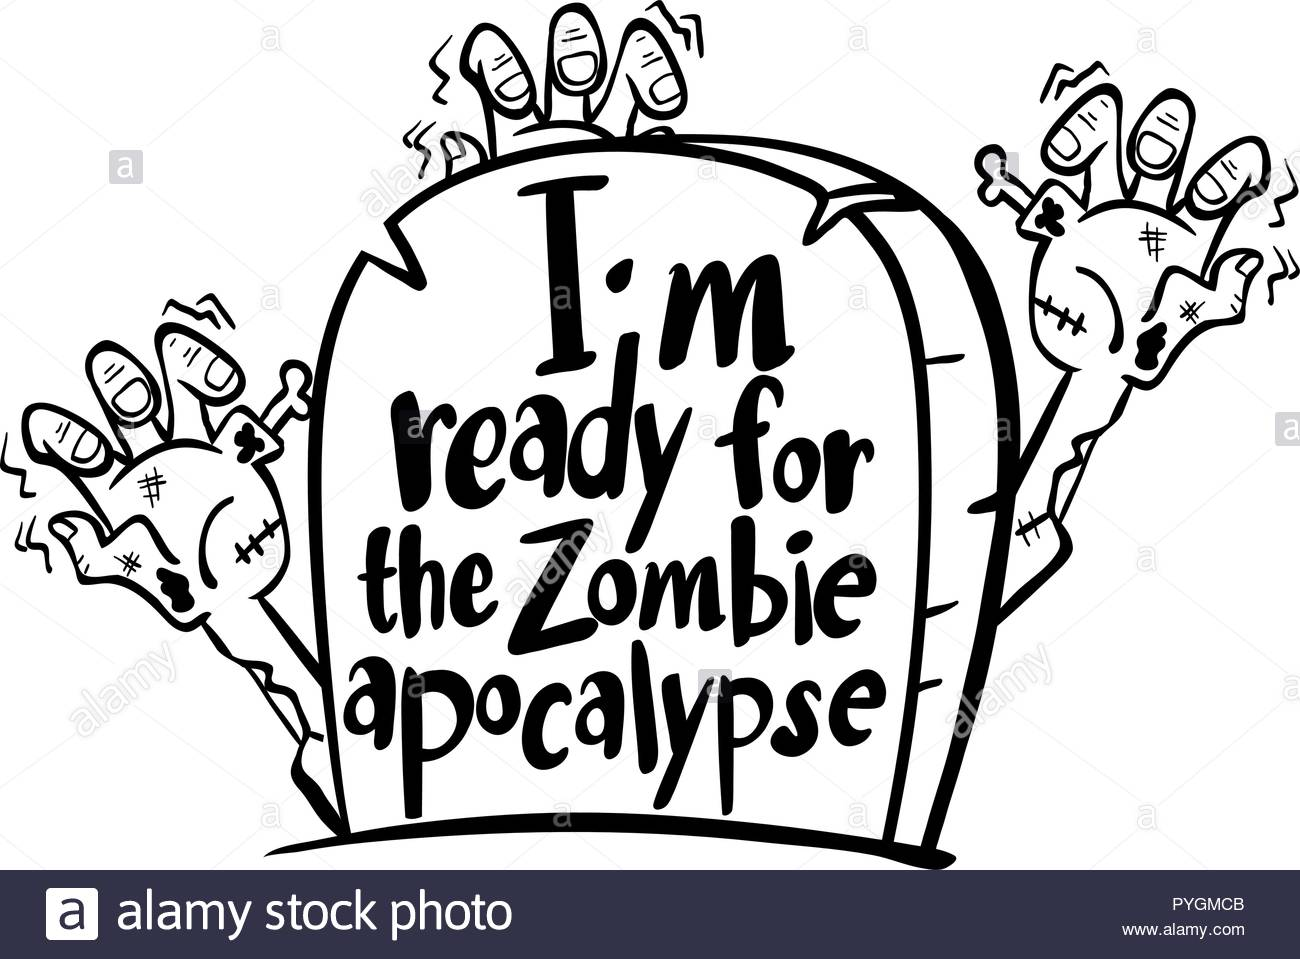 Clip Art Zombie Black and White Stock Photos & Images.